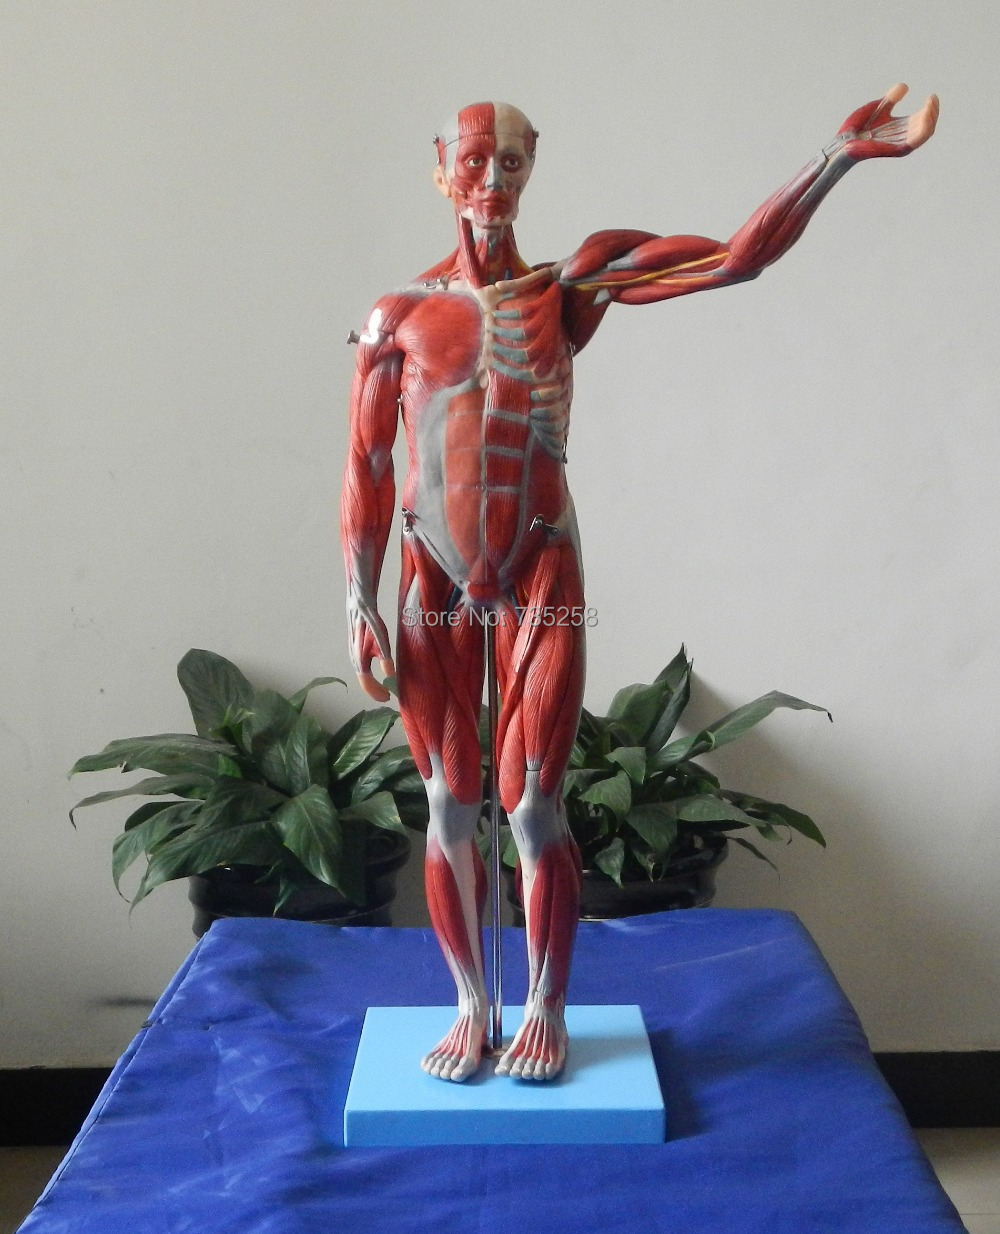 ISO Body Muscles Anatomical Model,Human Muscle Anatomy Teaching Model,Human Muscle Breakdown Model hd hard 60 cm male human acupuncture acupoint model muscle anatomy human body acupuncture point model human acupoints model